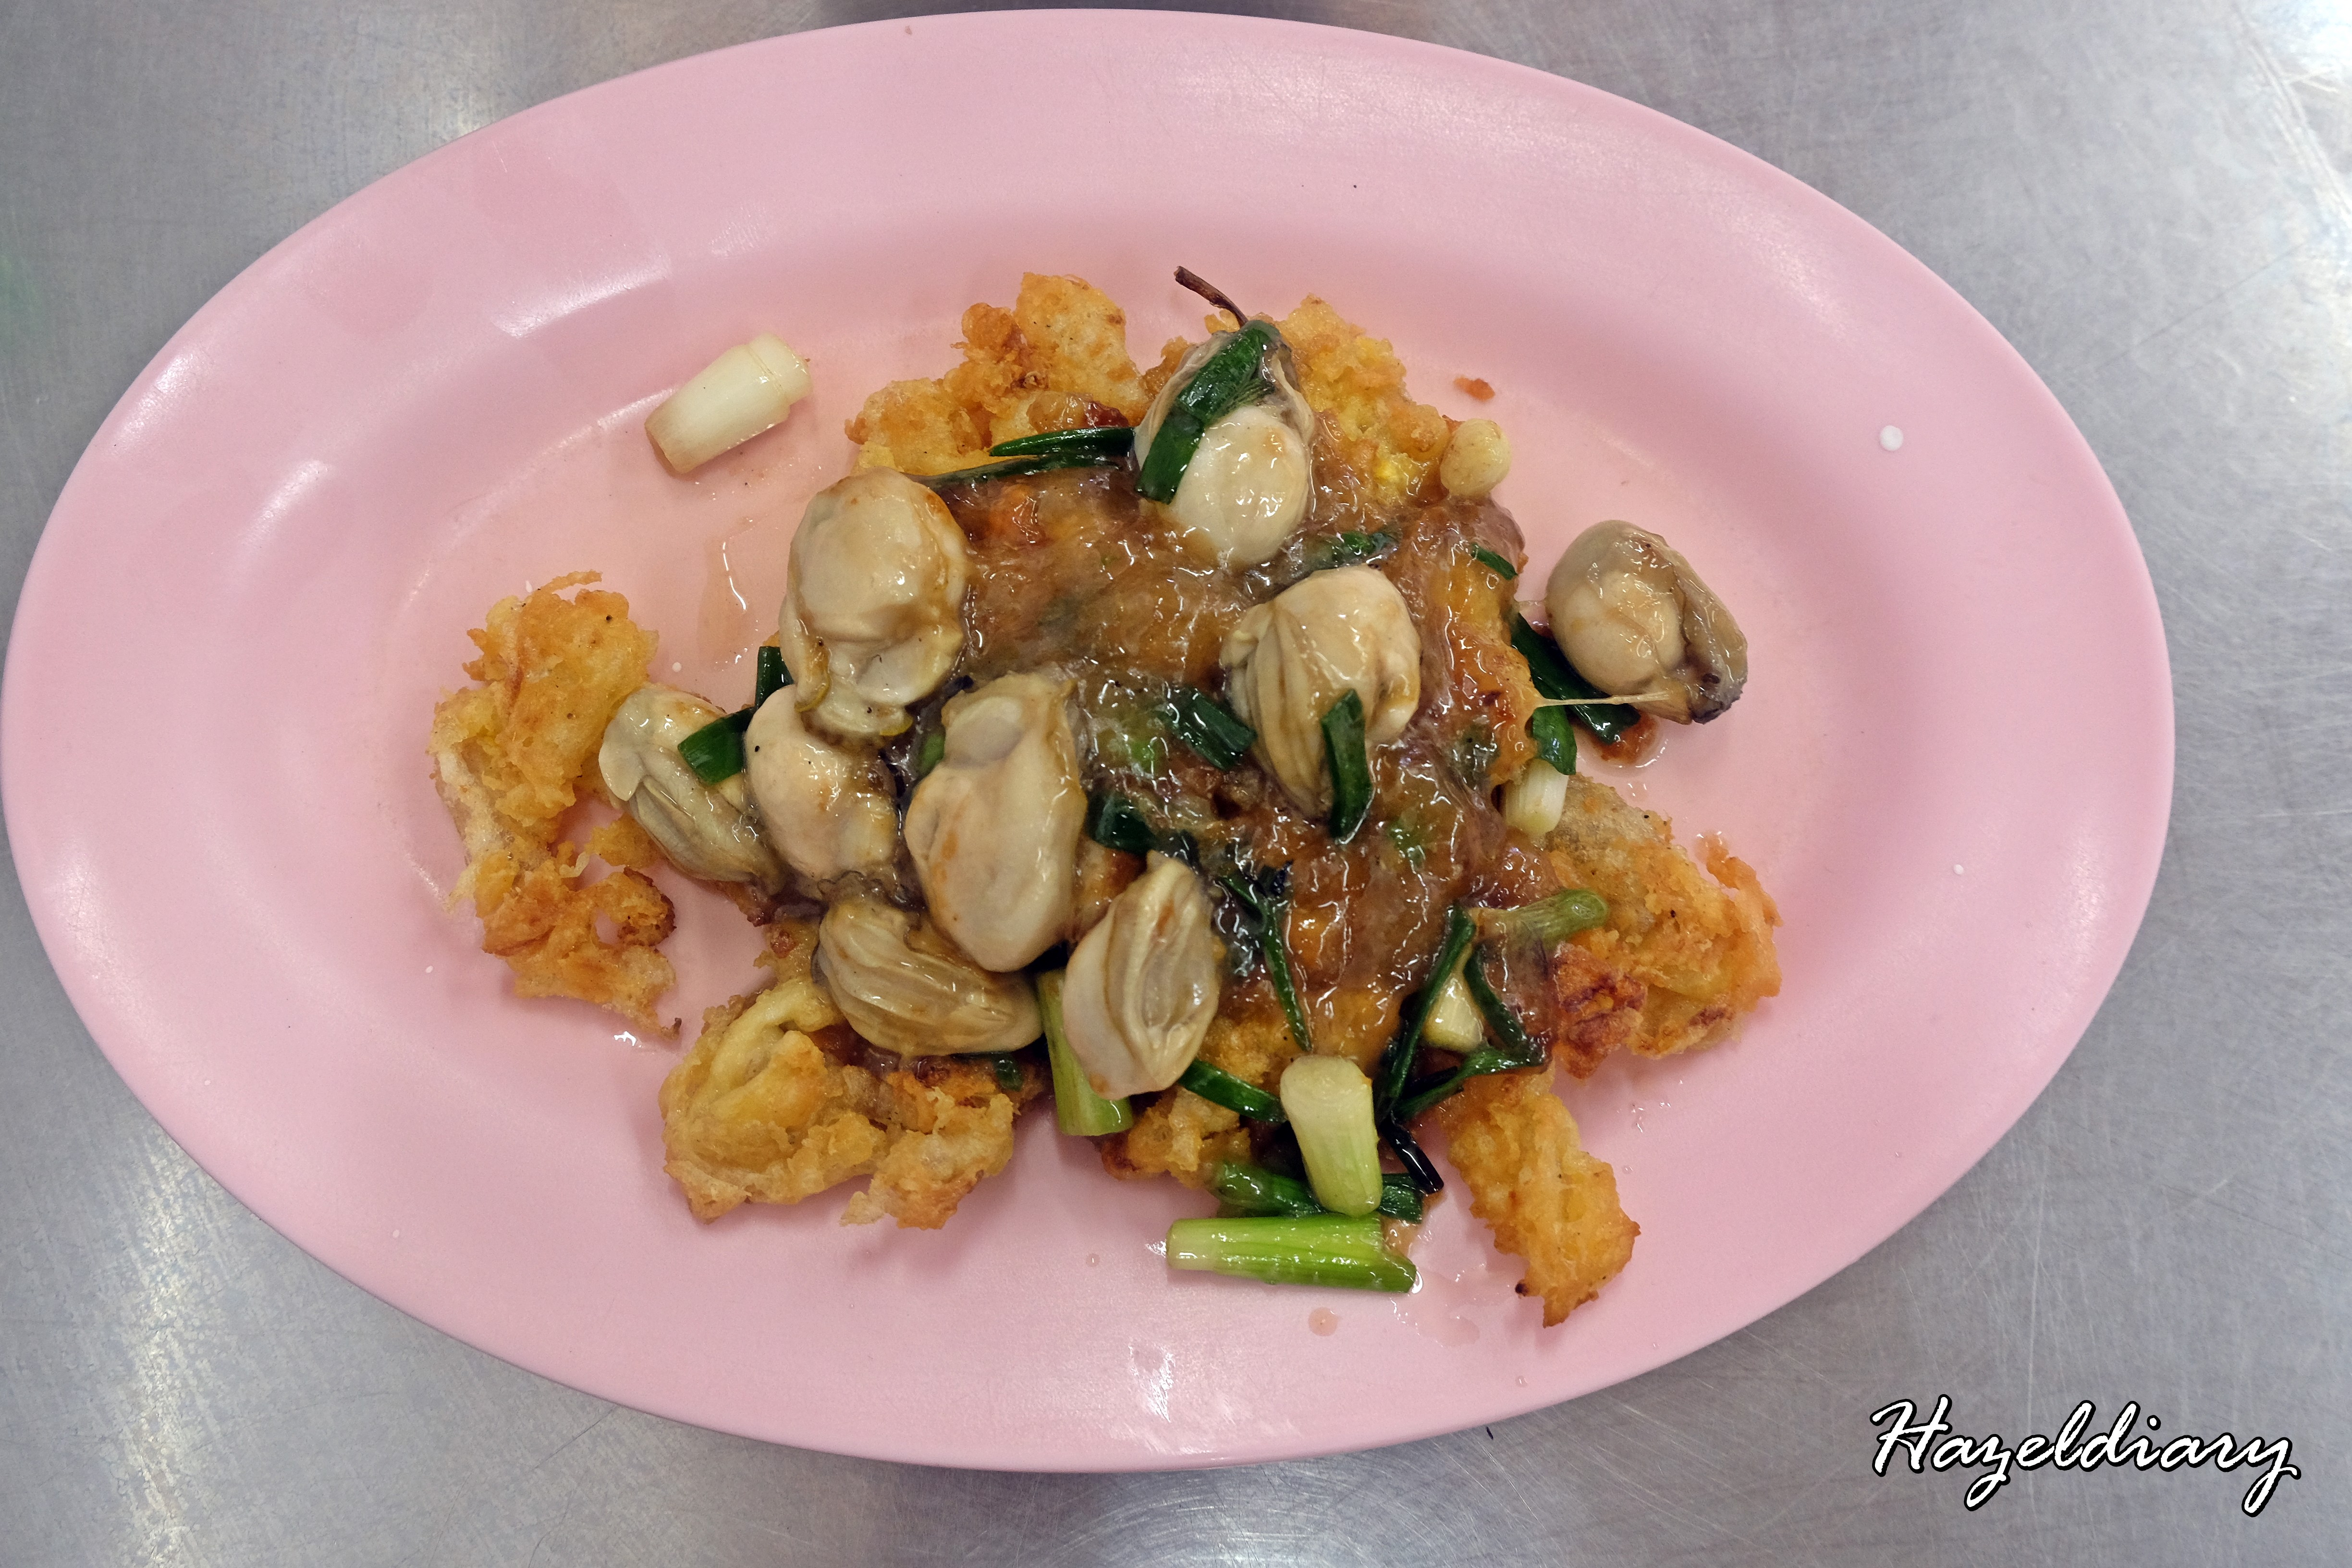 Nai Mong Hoy Tod -Oyster Omelette